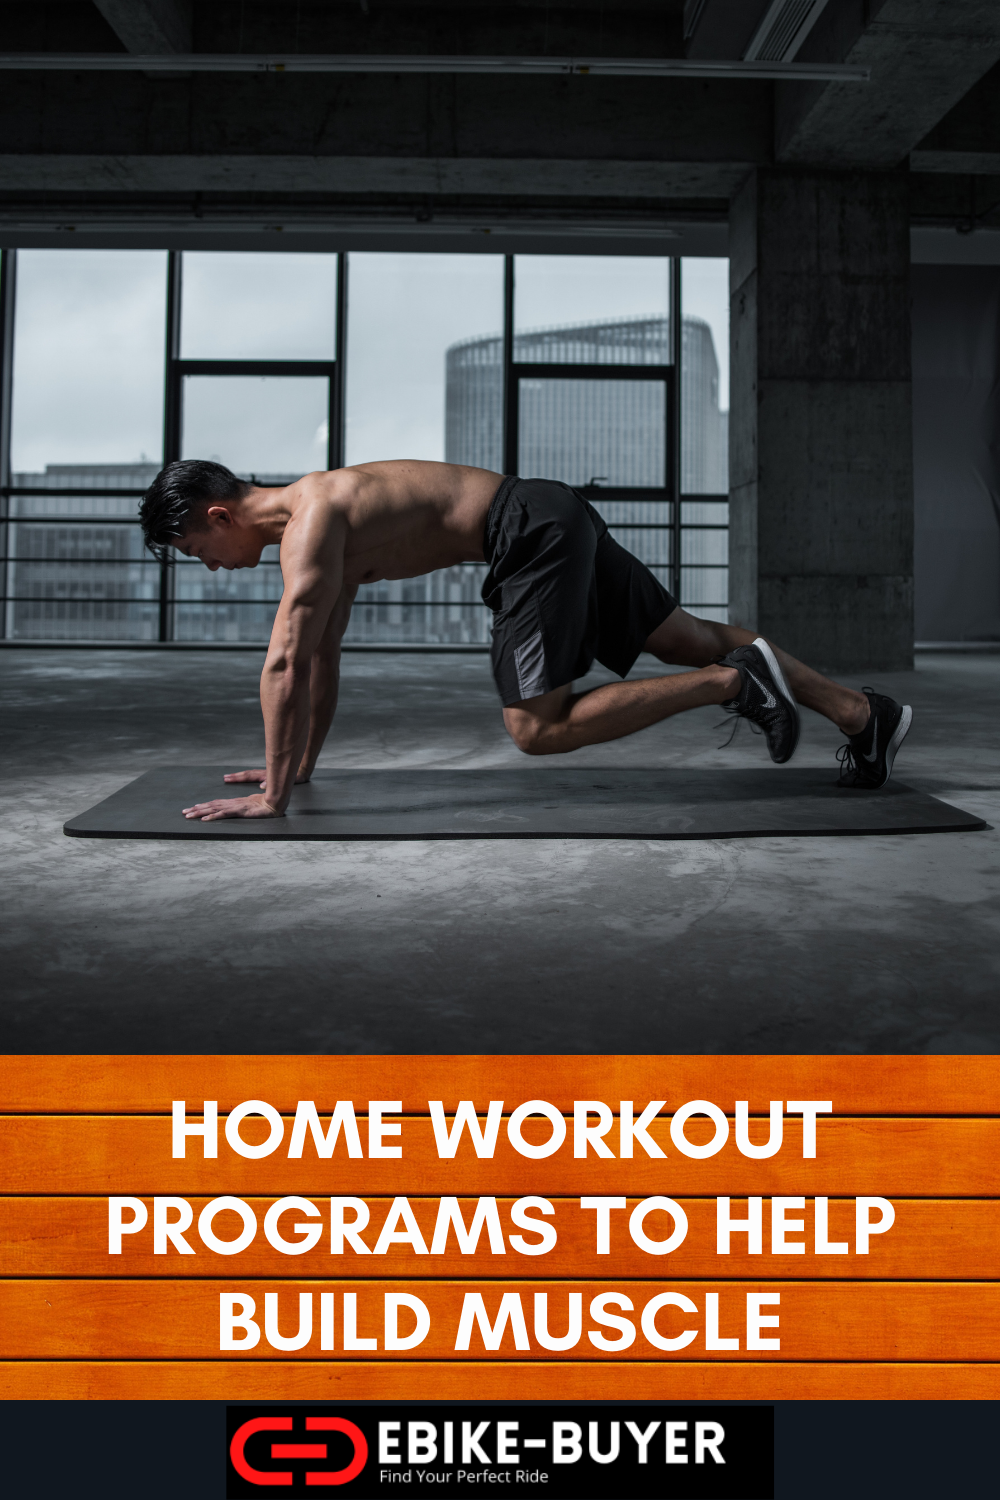 home workout programs for building muscle